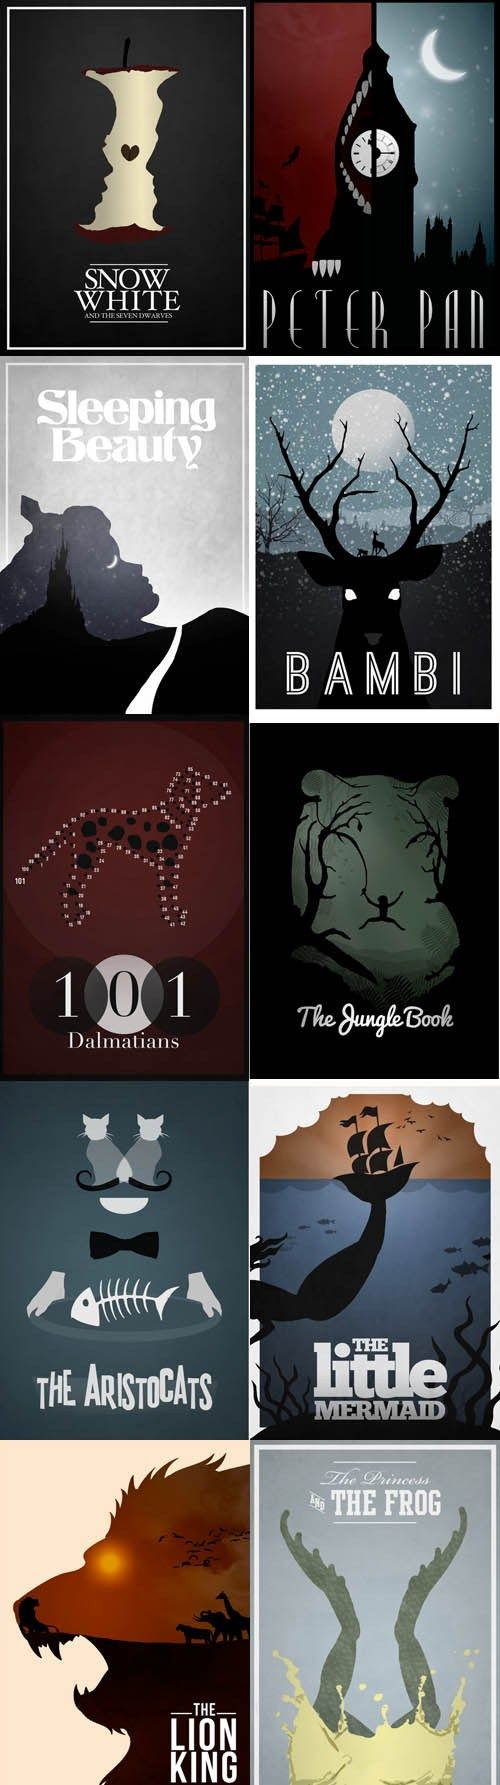 Minimalist Disney Movie Posters - I like Sleeping Beauty's the best